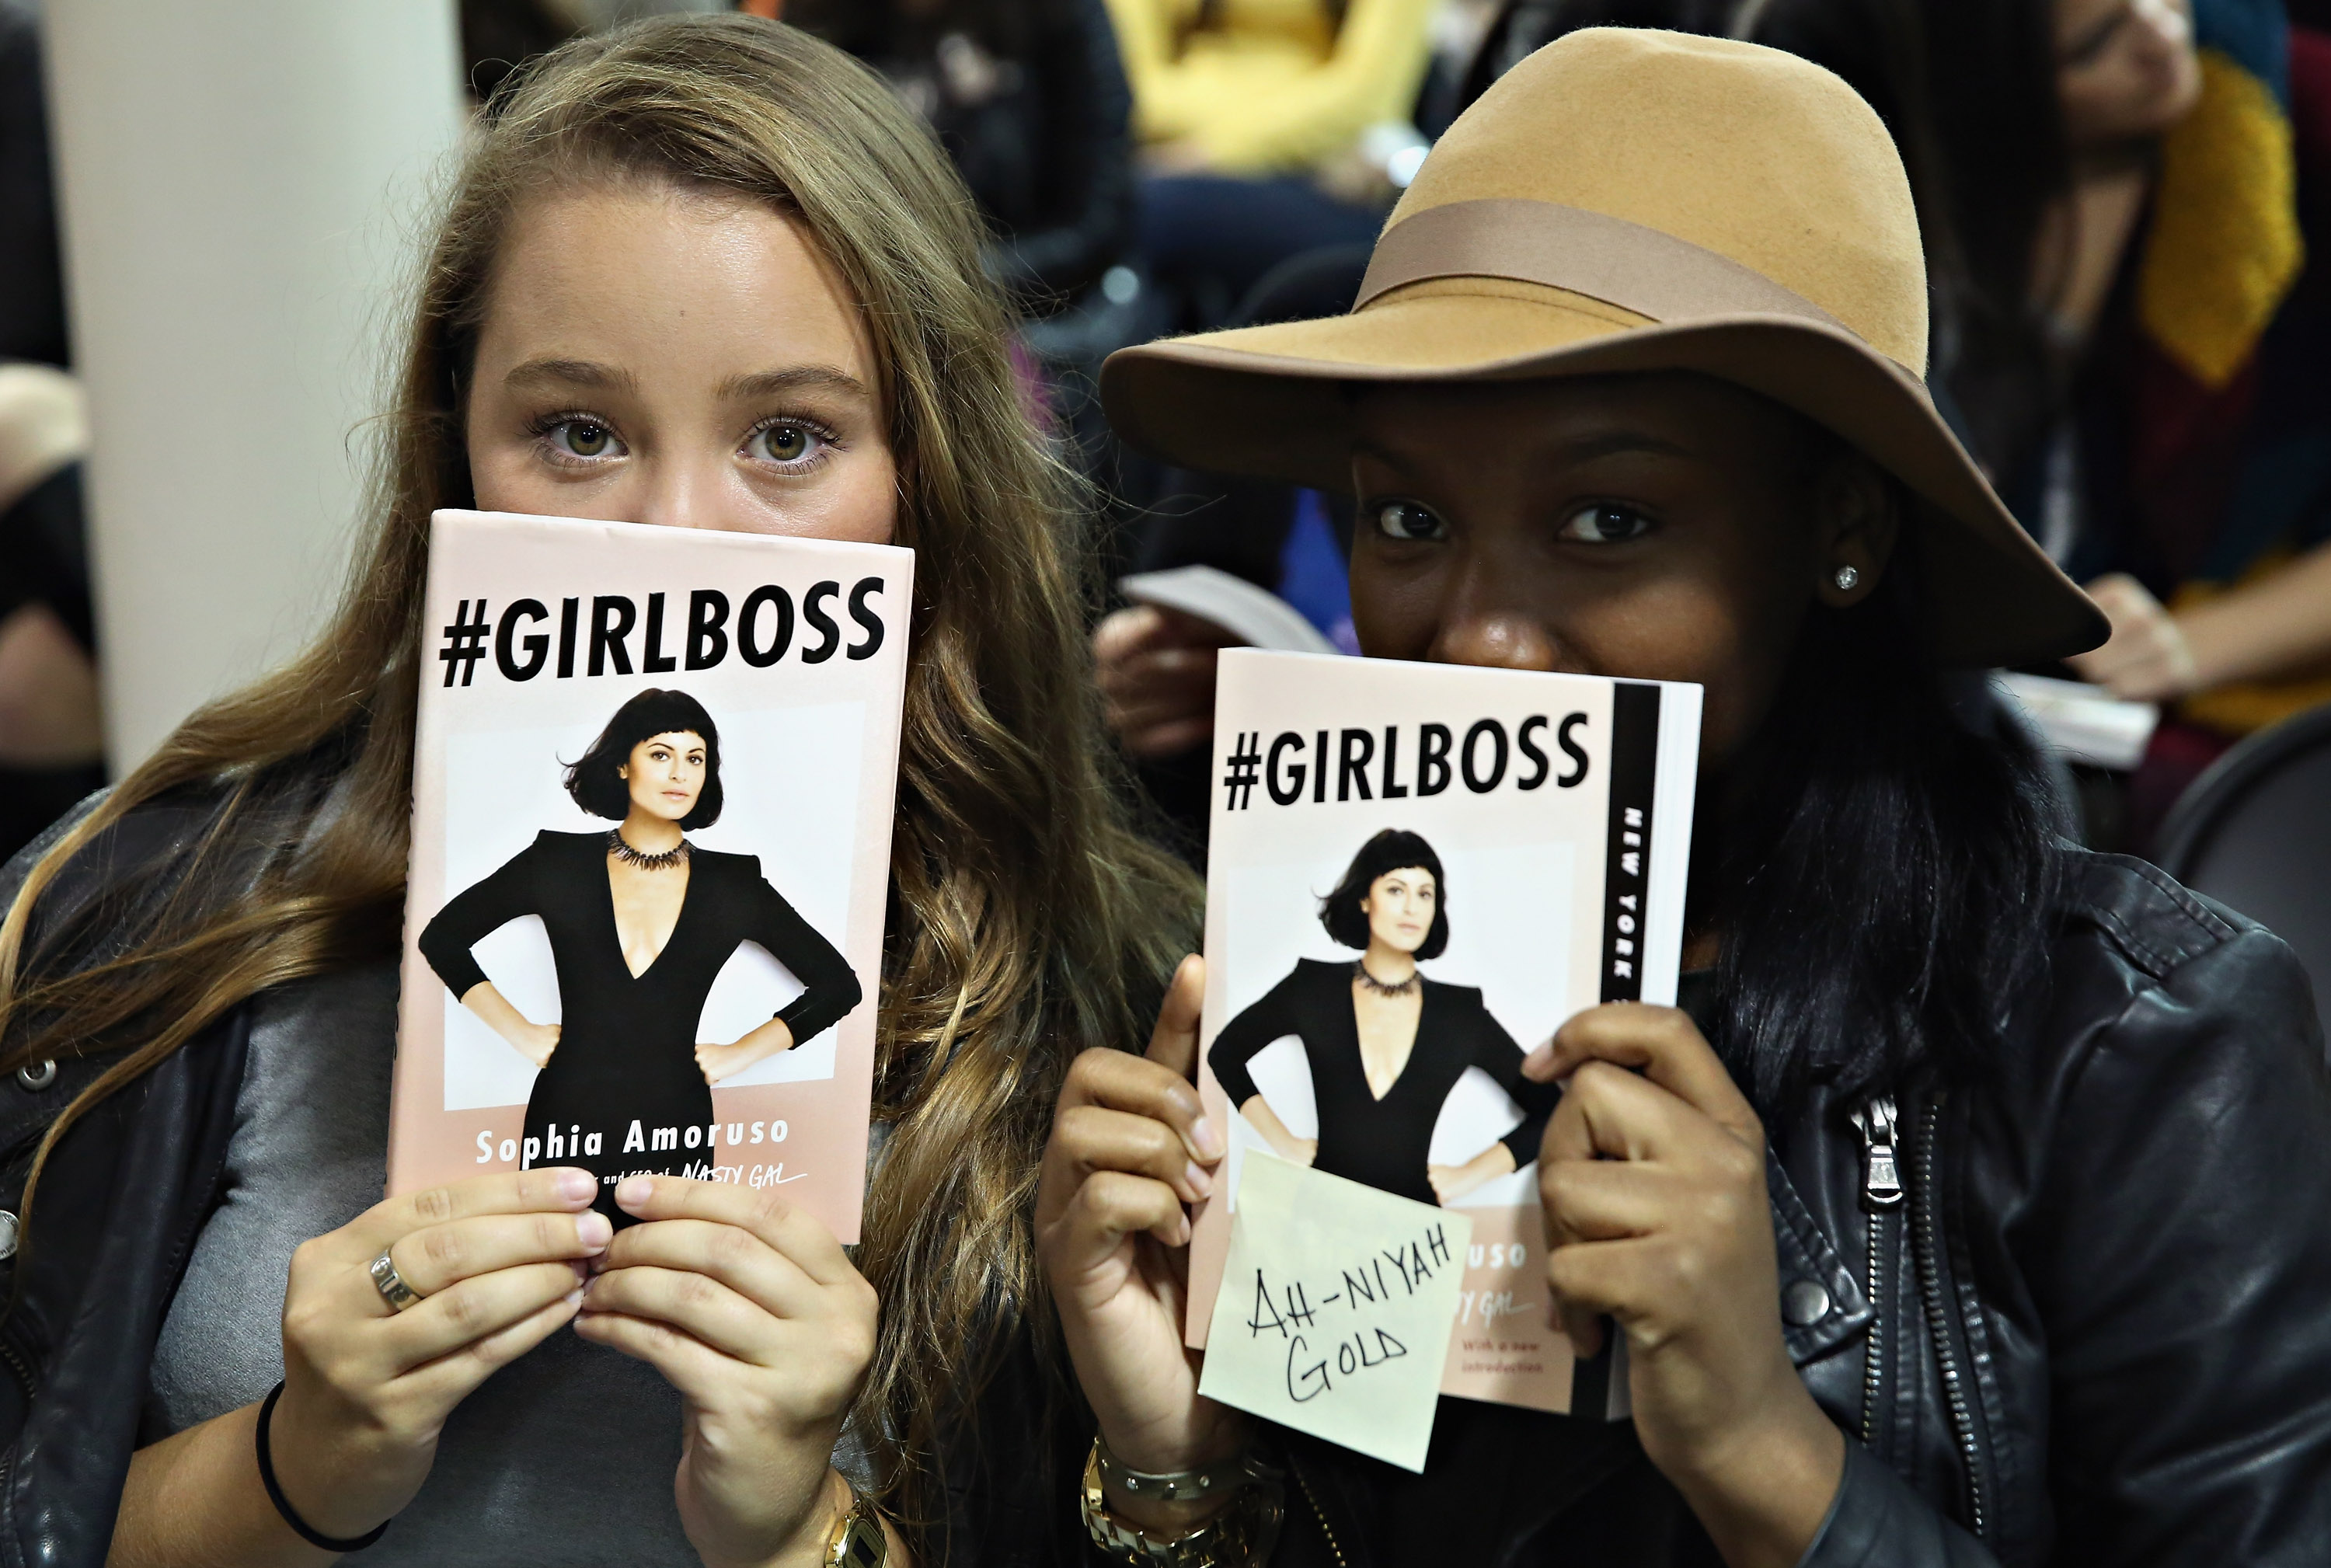 12 Books Every Ambitious Woman Should Read